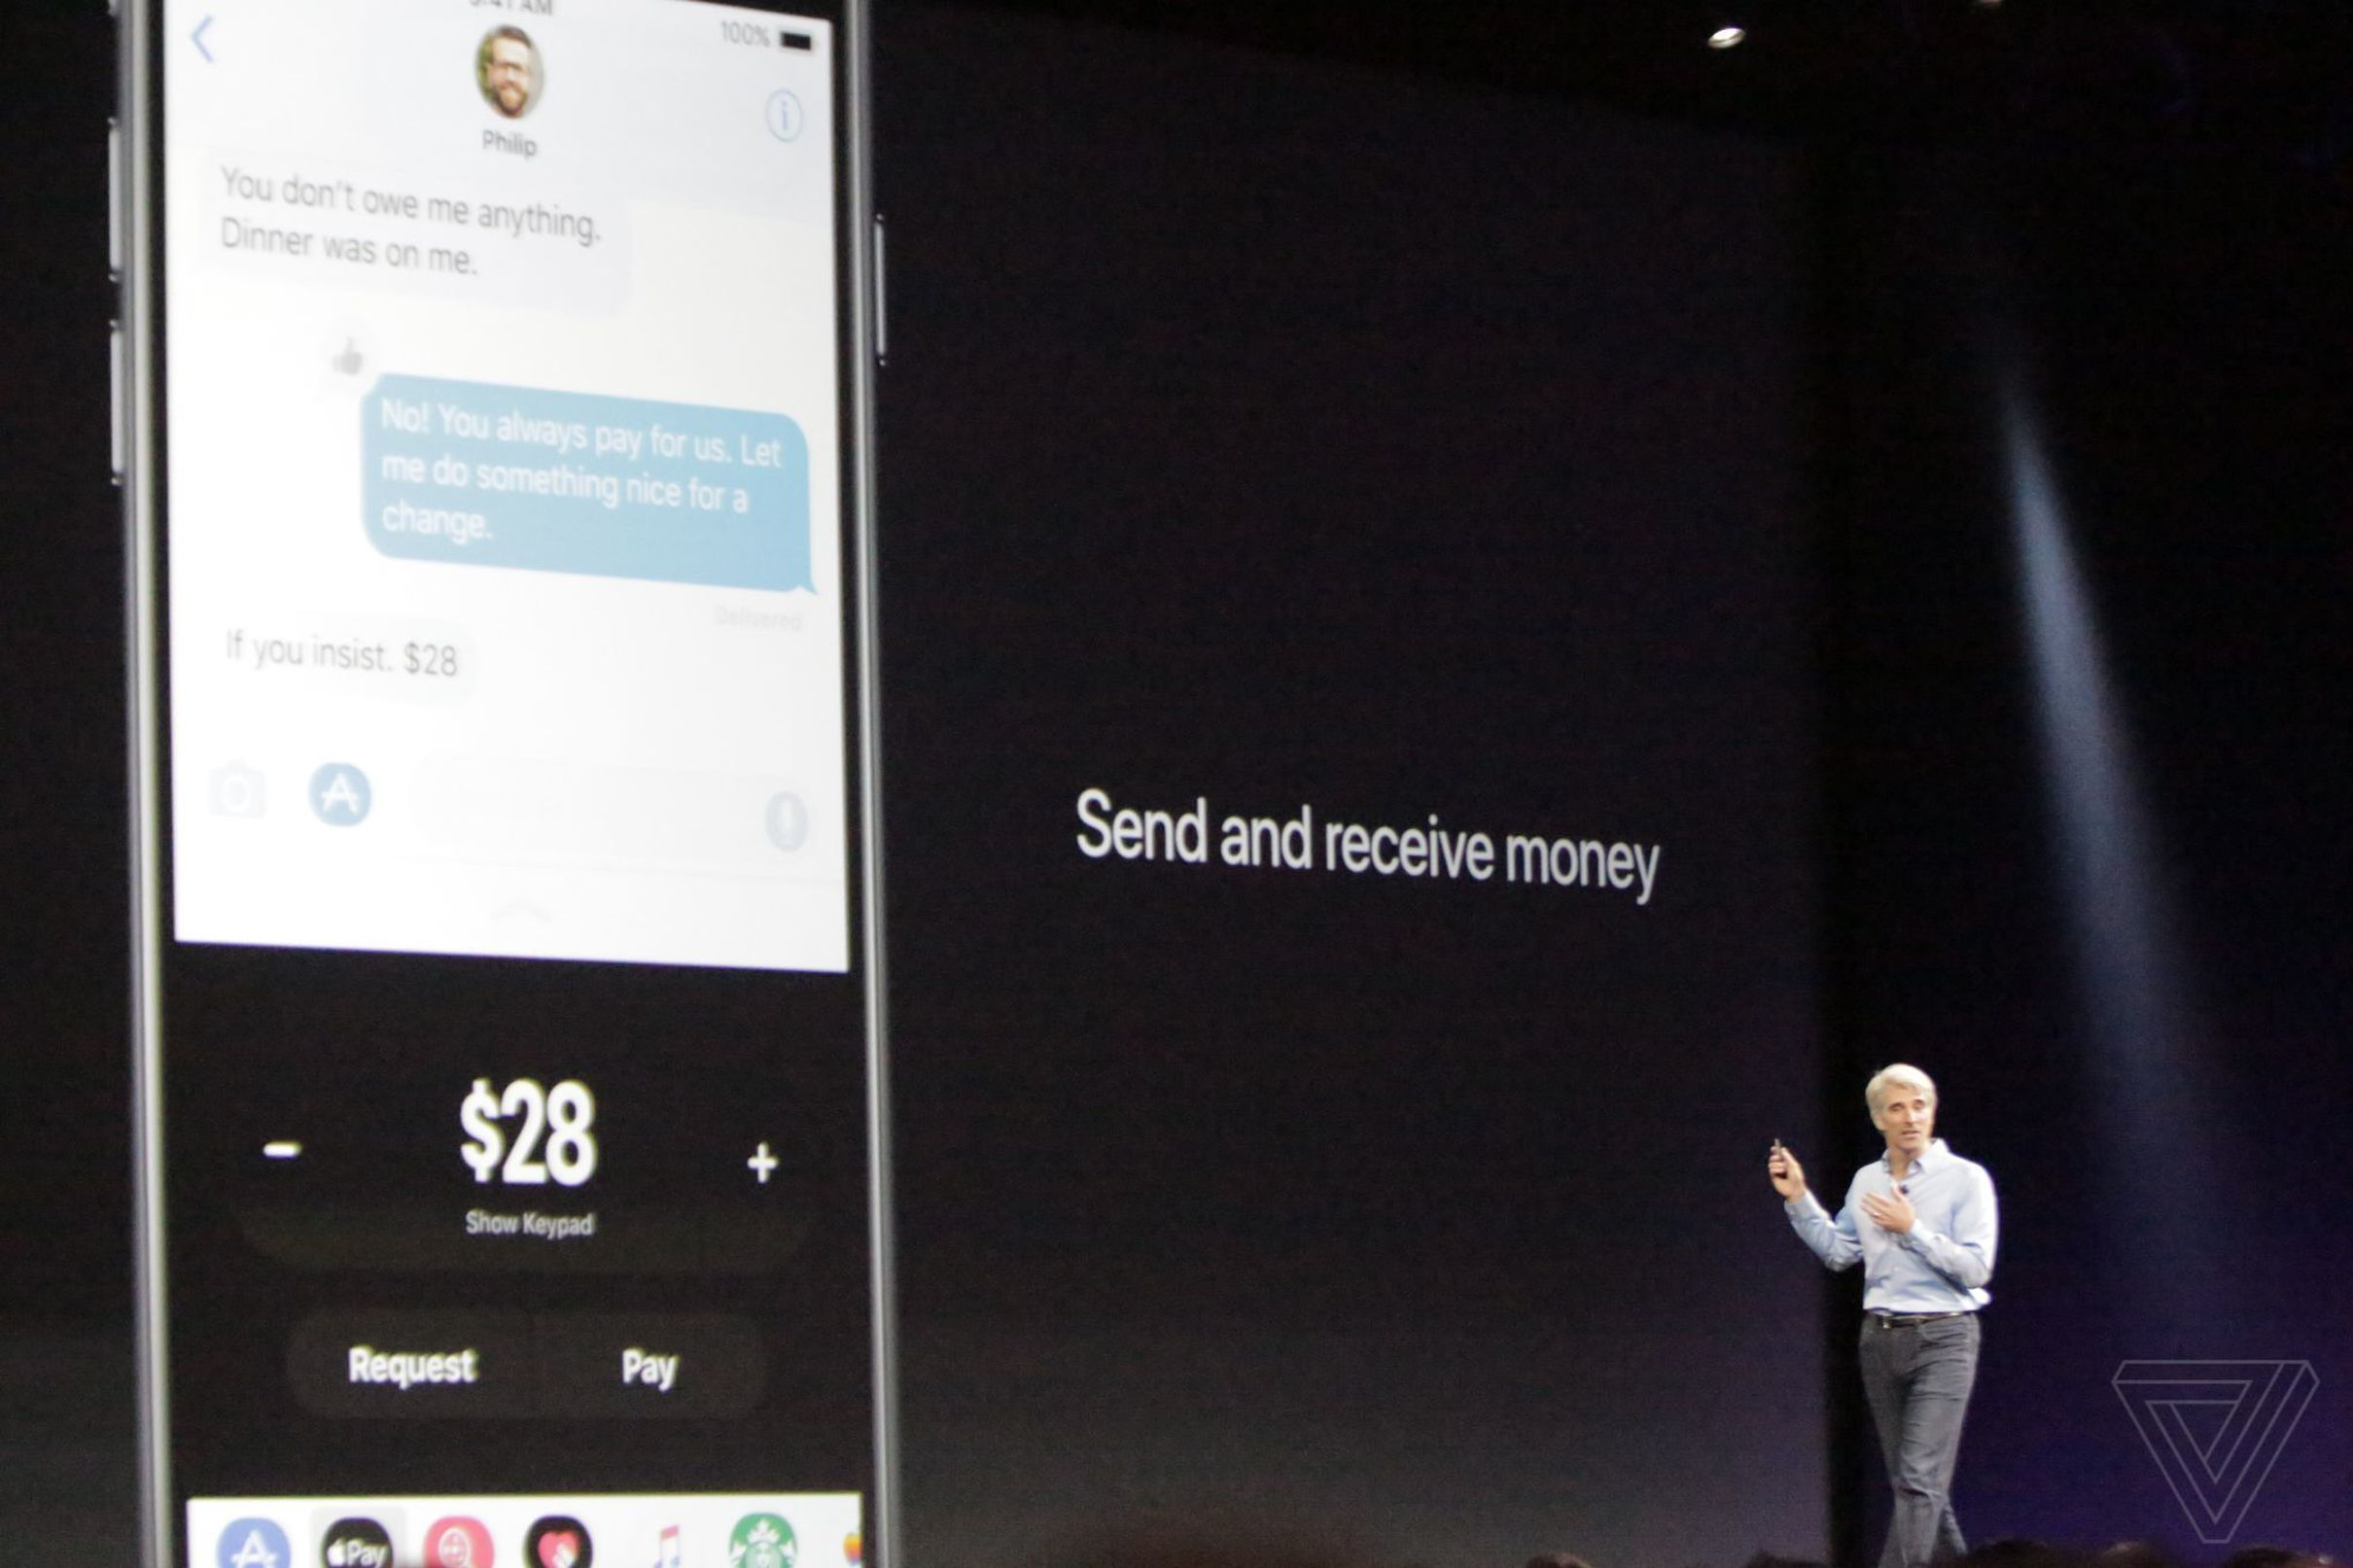 Ios 11 Lets You Send And Receive Money Via Imessage With Apple Pay Apple Pay Let It Be Android Pay